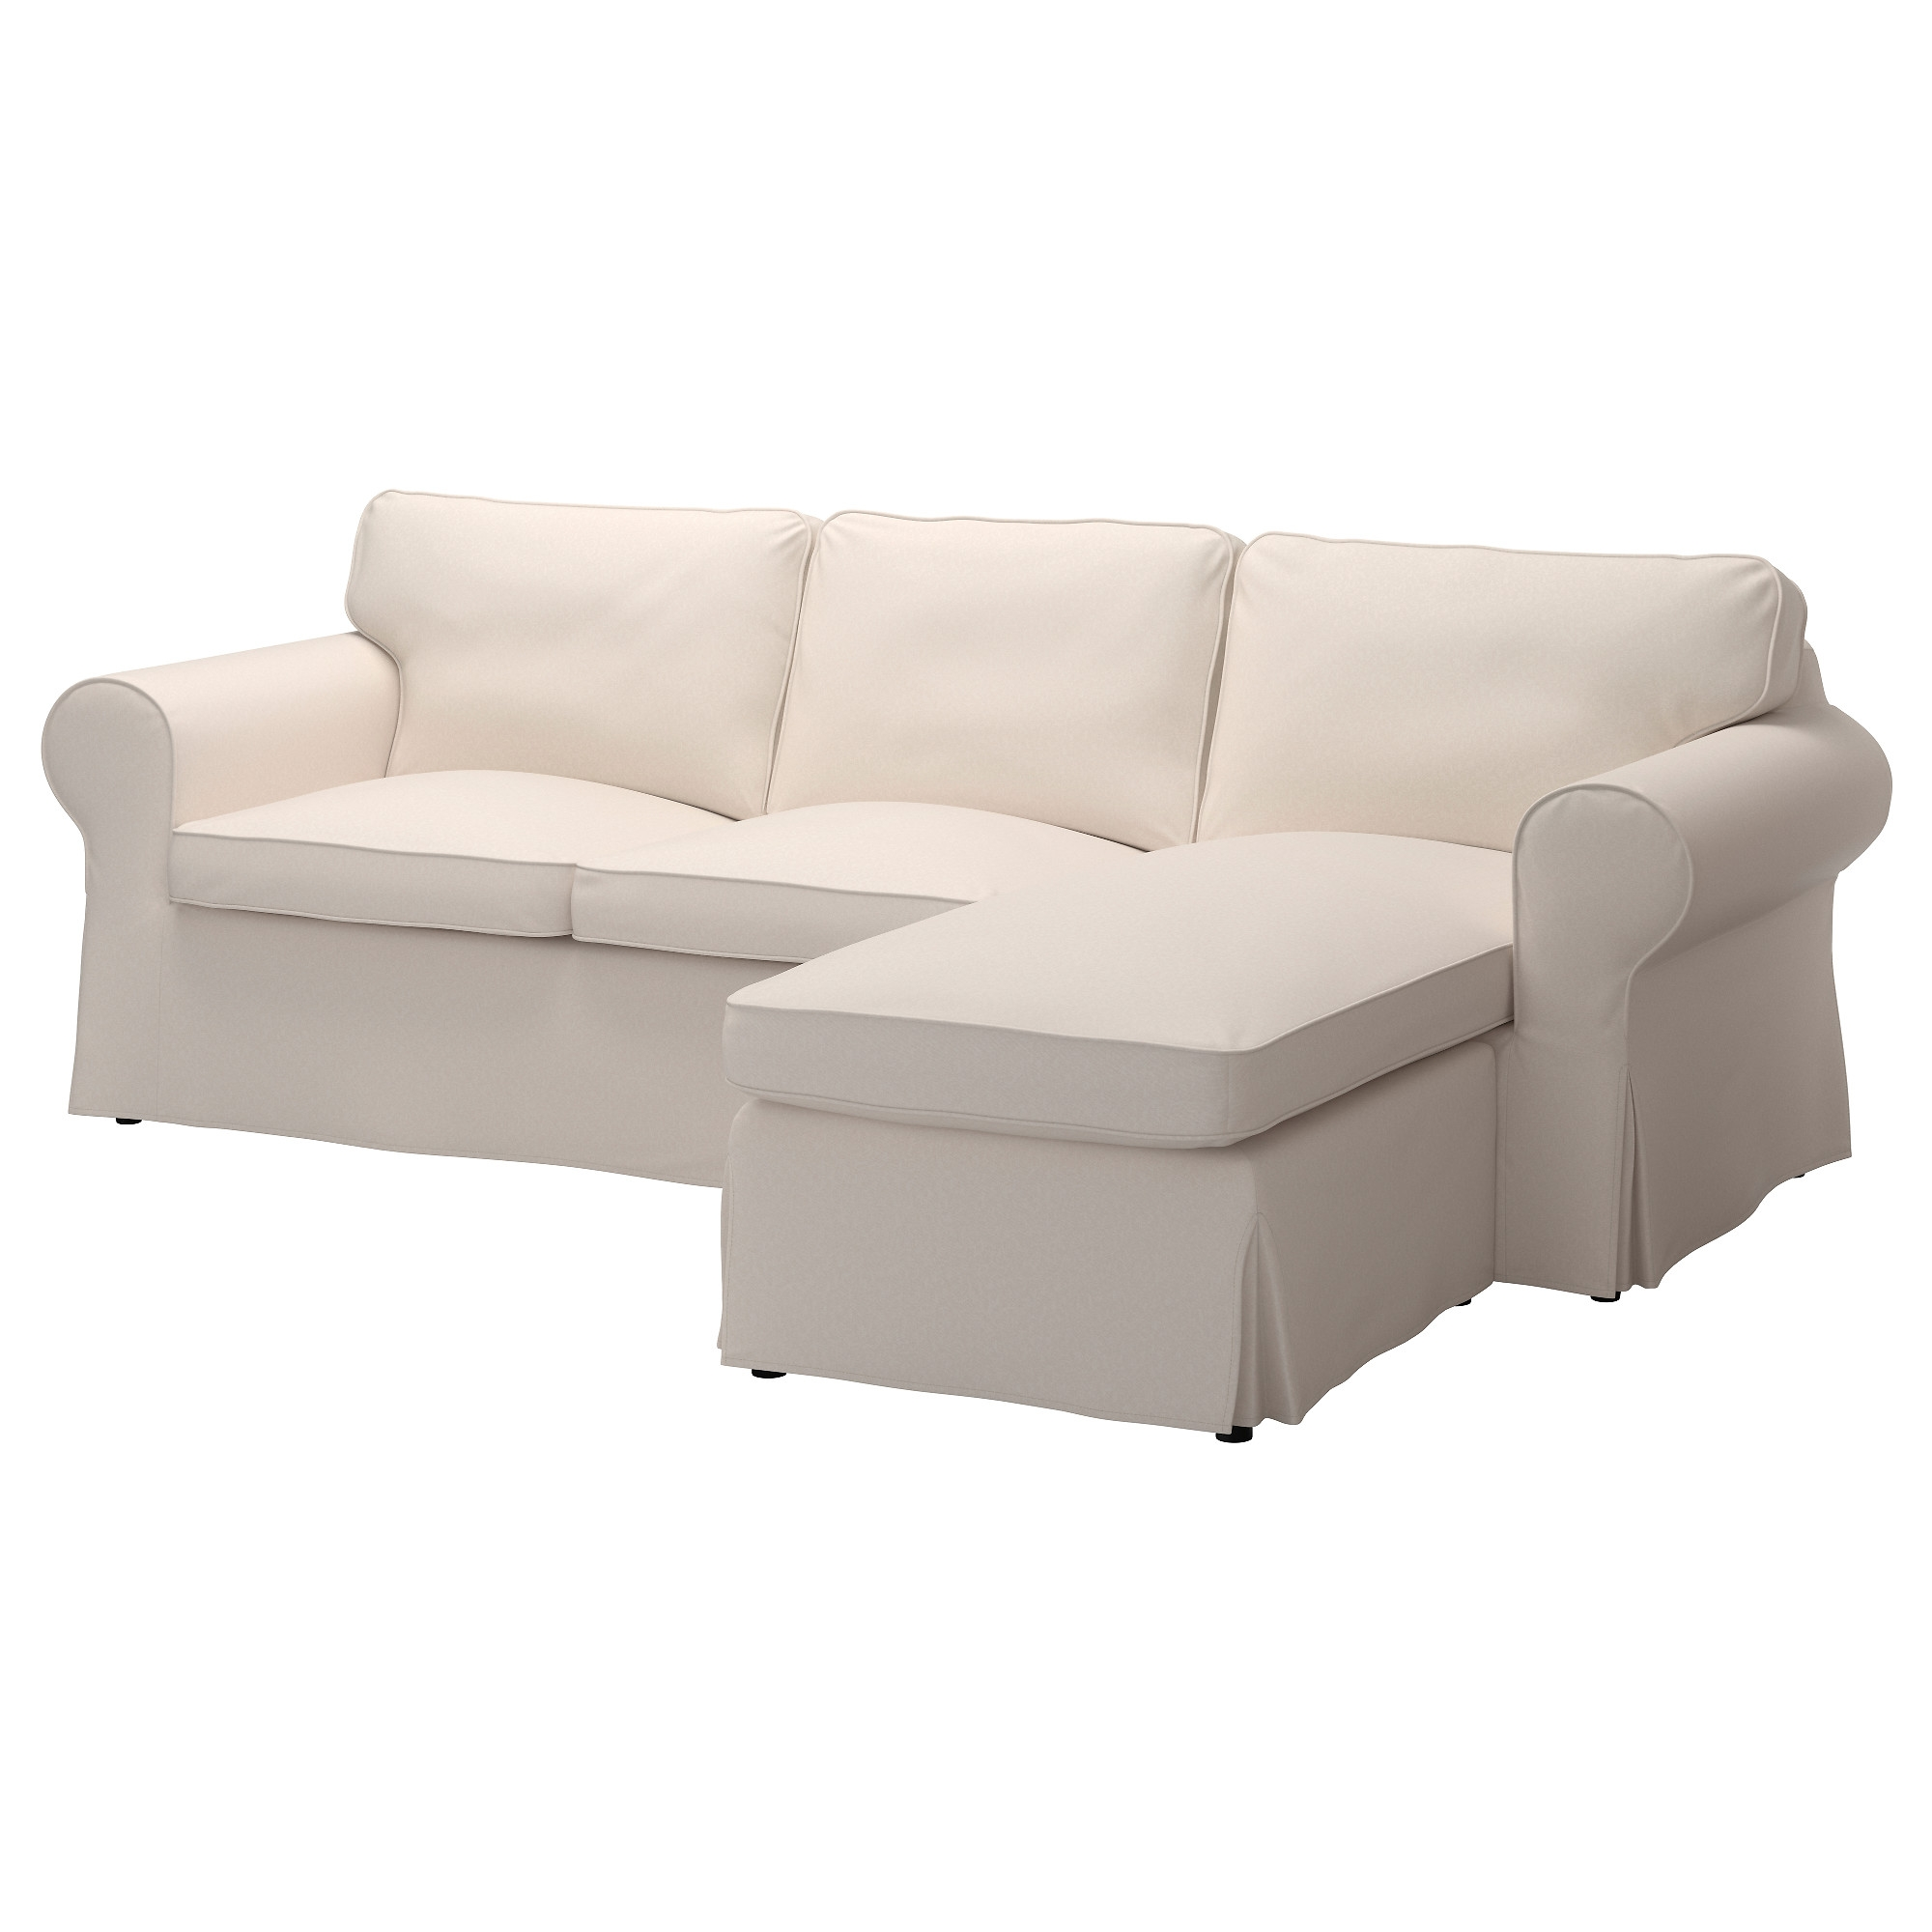 Ektorp Three Seat Sofa With Chaise Longue Lofallet Beige Cover